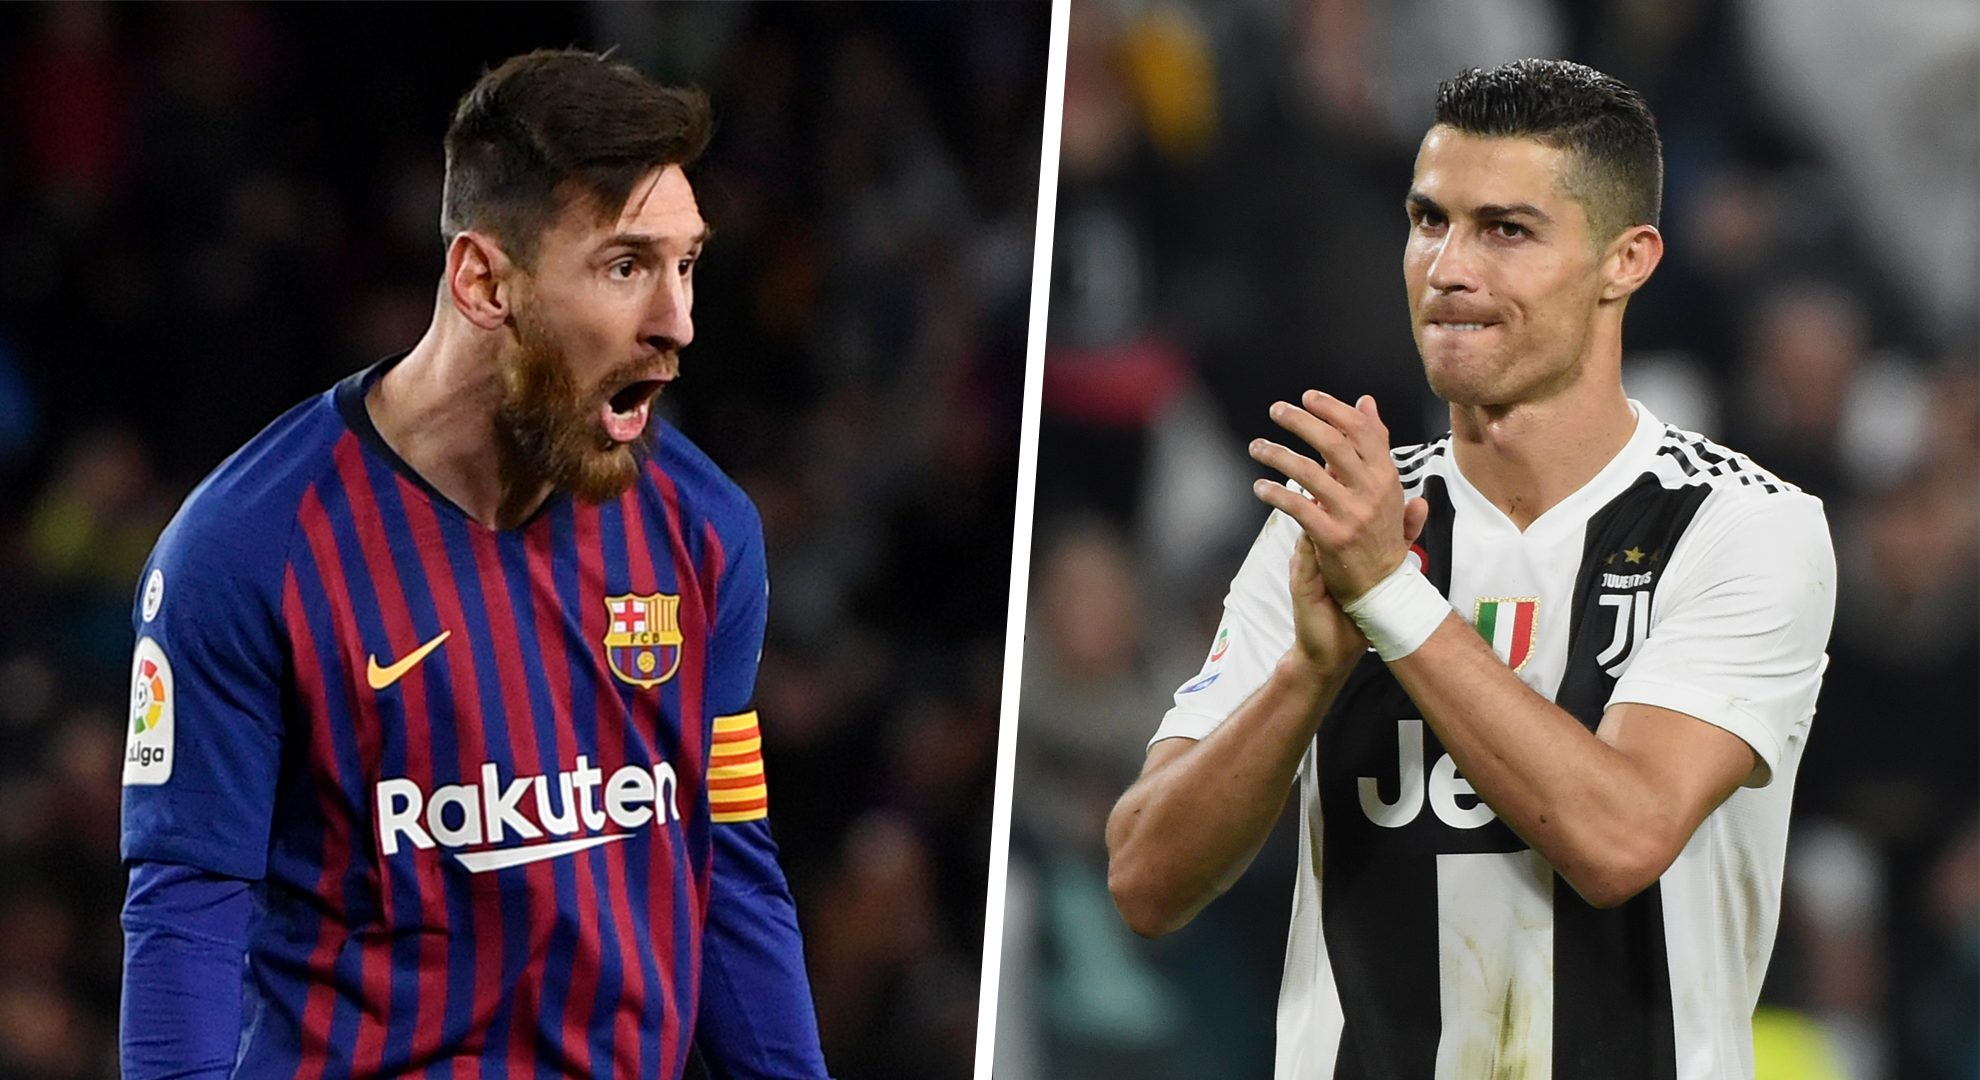 Reasons Why Cristiano Ronaldo Is Better Than Lionel Messi